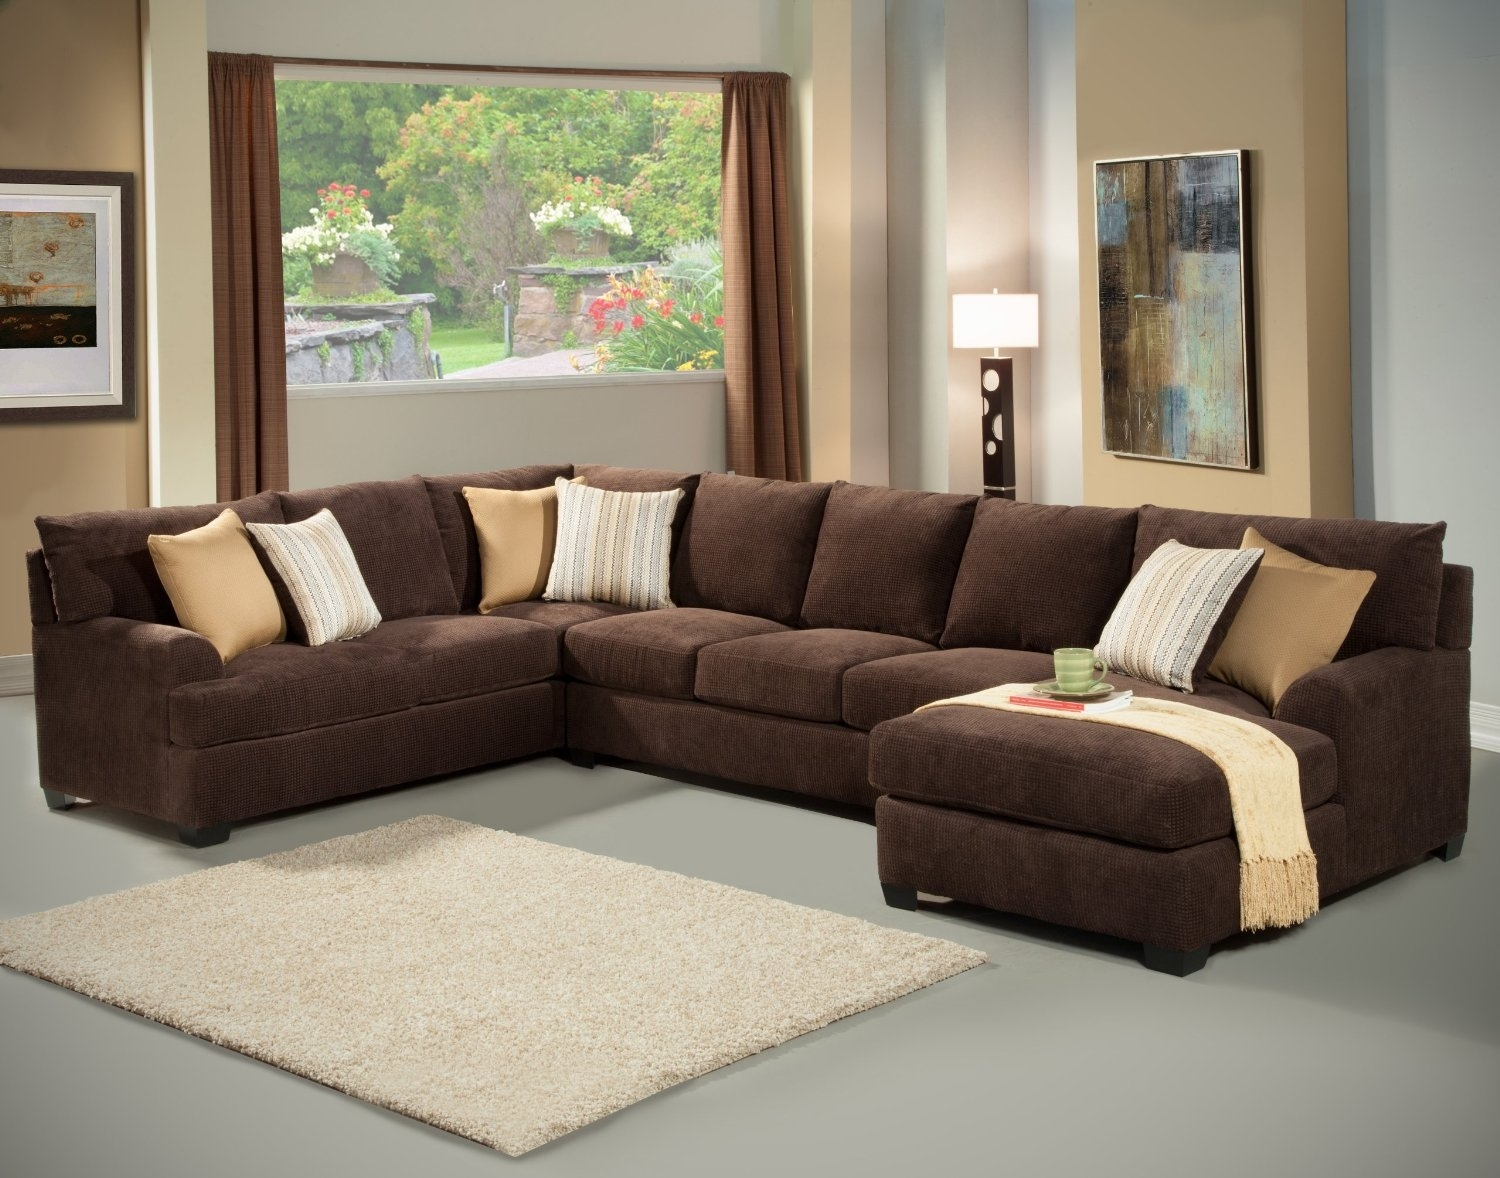 Sectional Sofas In Phoenix Az | Functionalities Intended For Phoenix Arizona Sectional Sofas (View 6 of 10)